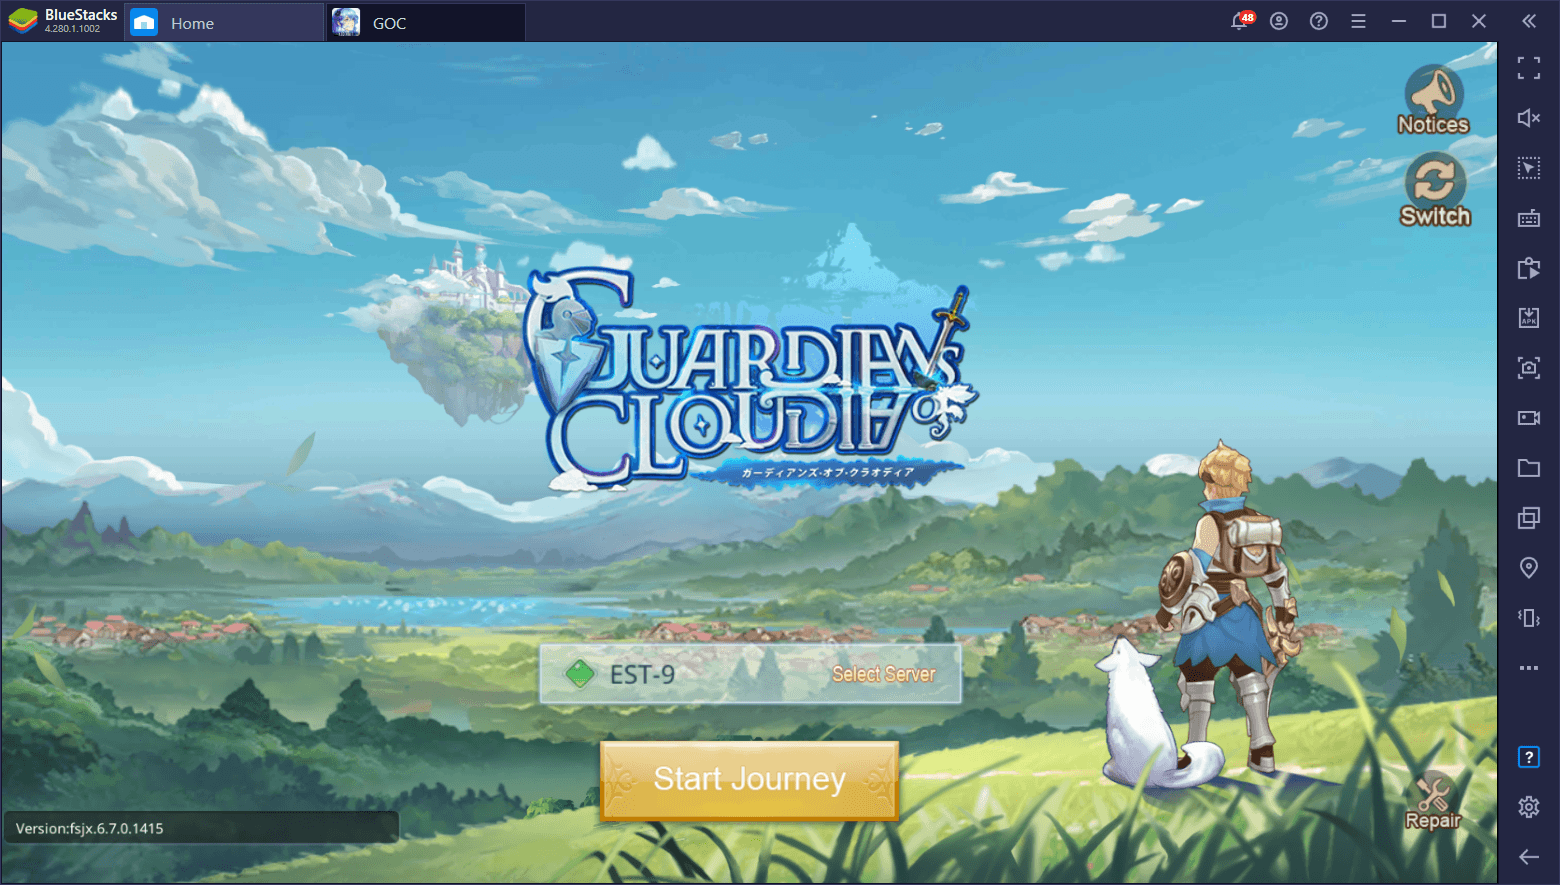 How to Install and Play Guardians of Cloudia on PC